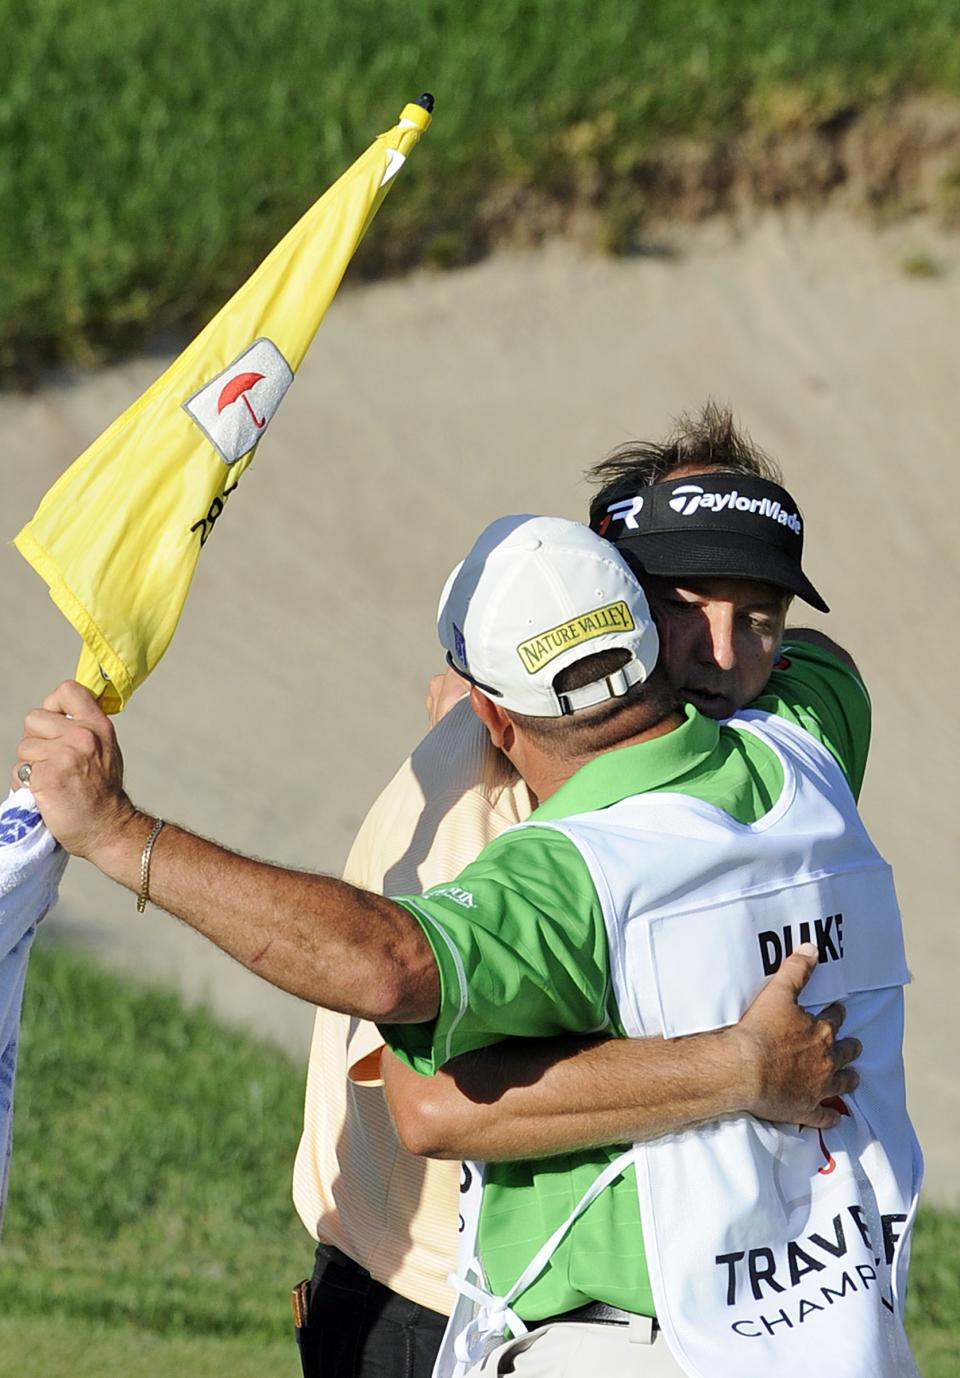 Ken Duke celebrates, right, with his caddie after winning the Travelers Championship golf tournament in Cromwell, Conn., Sunday, June 23, 2013. Duke won the second playoff hole against Chris Stroud. (AP Photo/Fred Beckham)